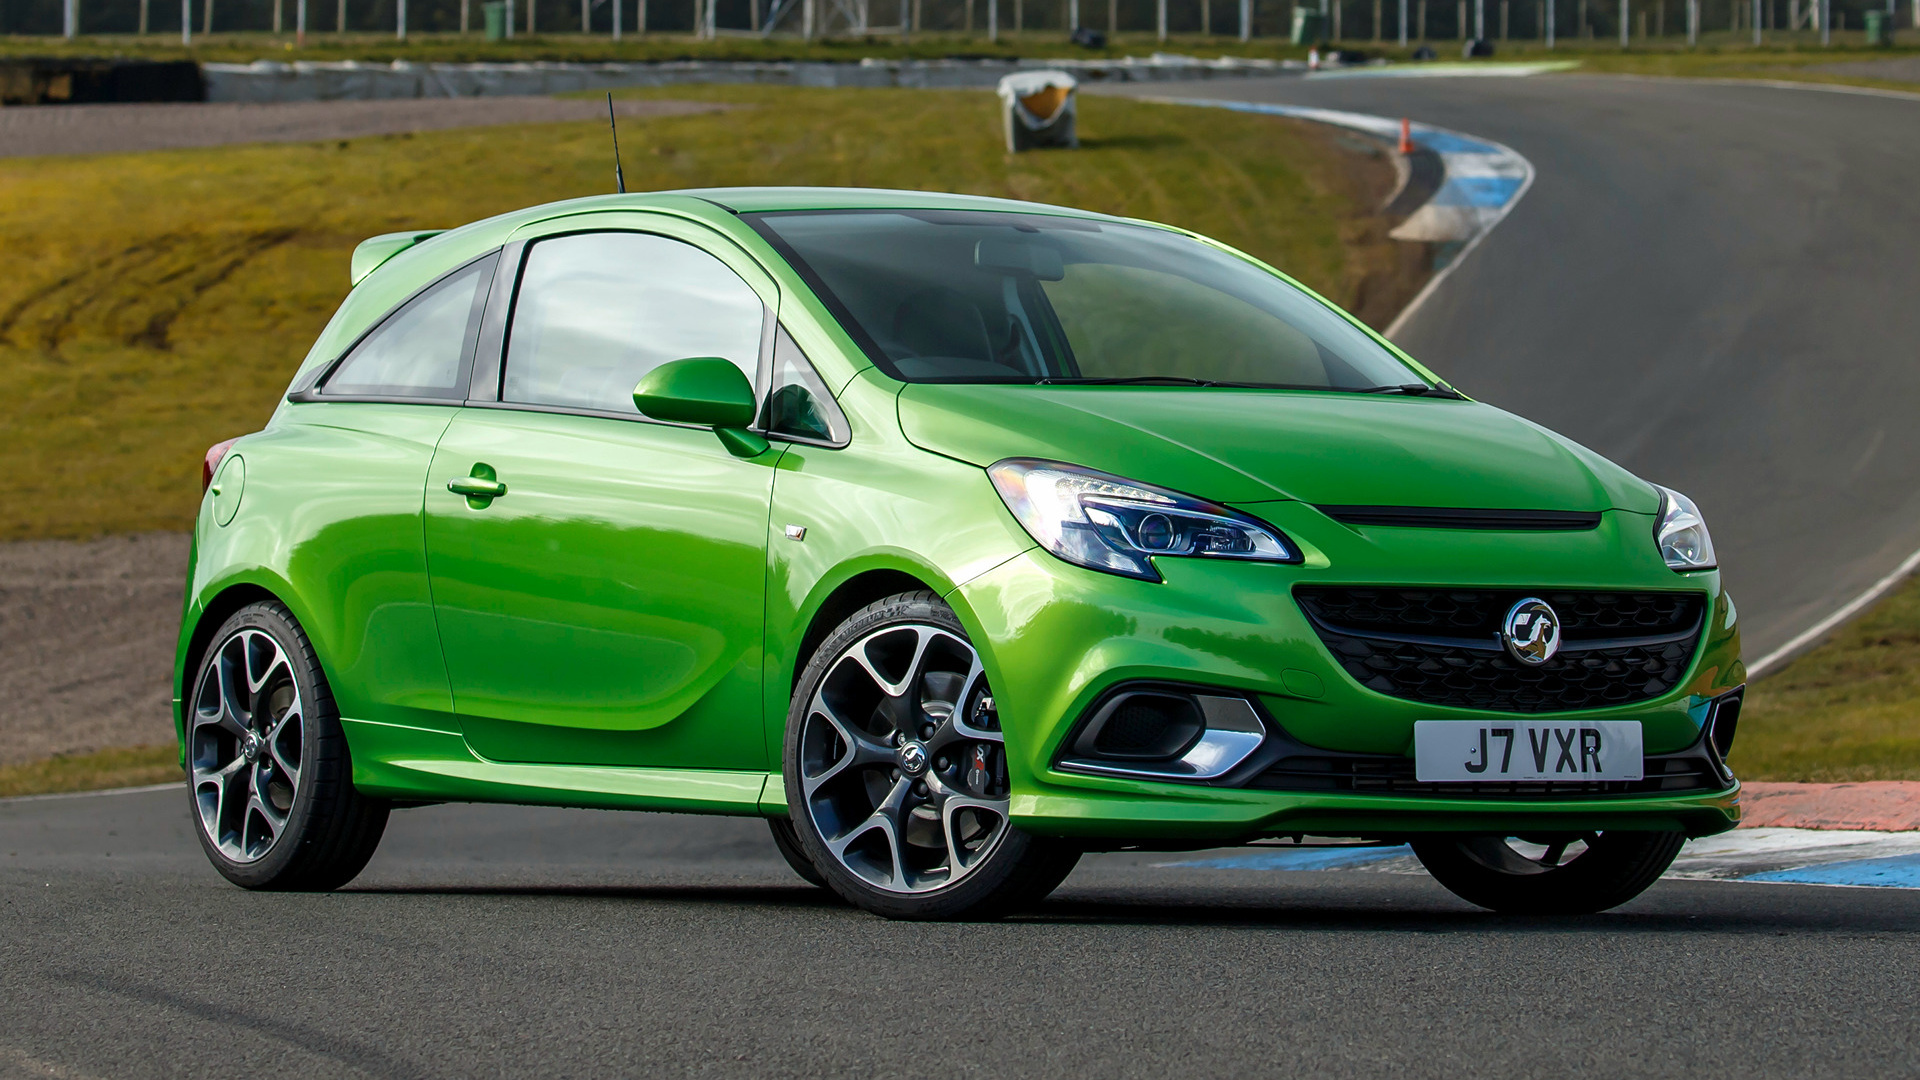 Vauxhall Corsa Vxr Wallpaper Hd Click To View Auto Design Tech 1920x1080